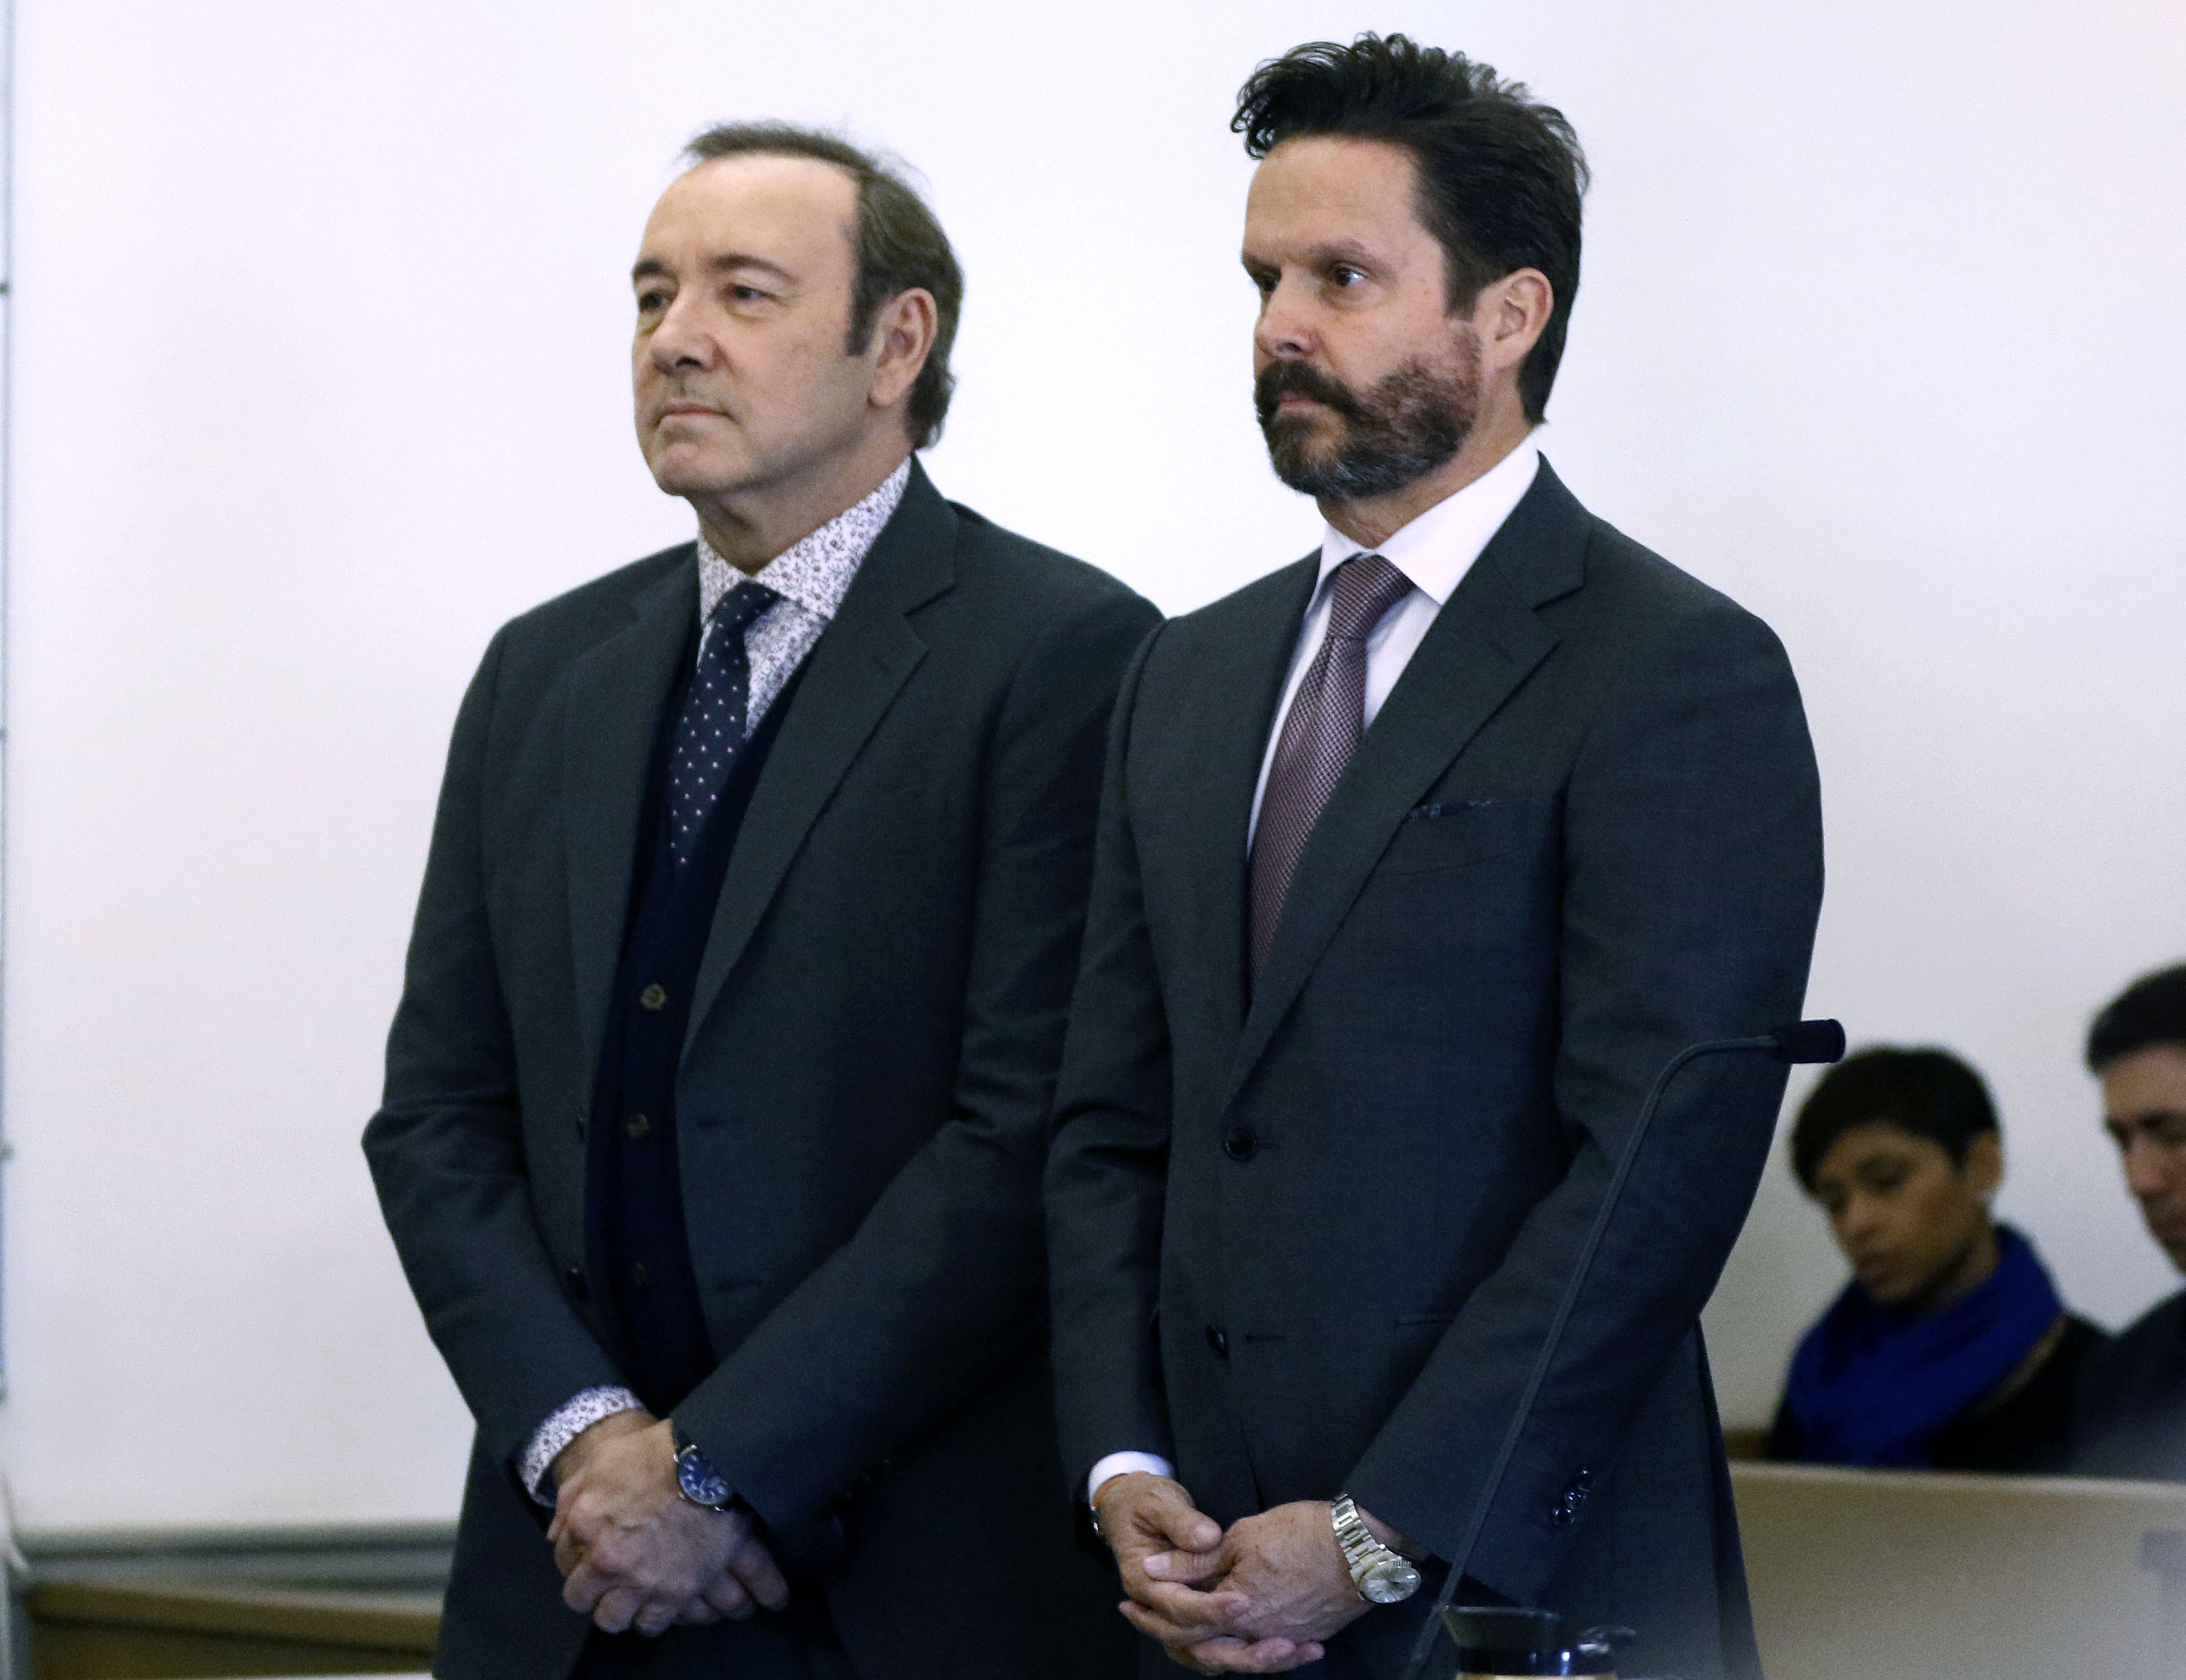 Kevin Spacey with his lawyer Alan Jackson in district court in Nantucket, Massachusetts